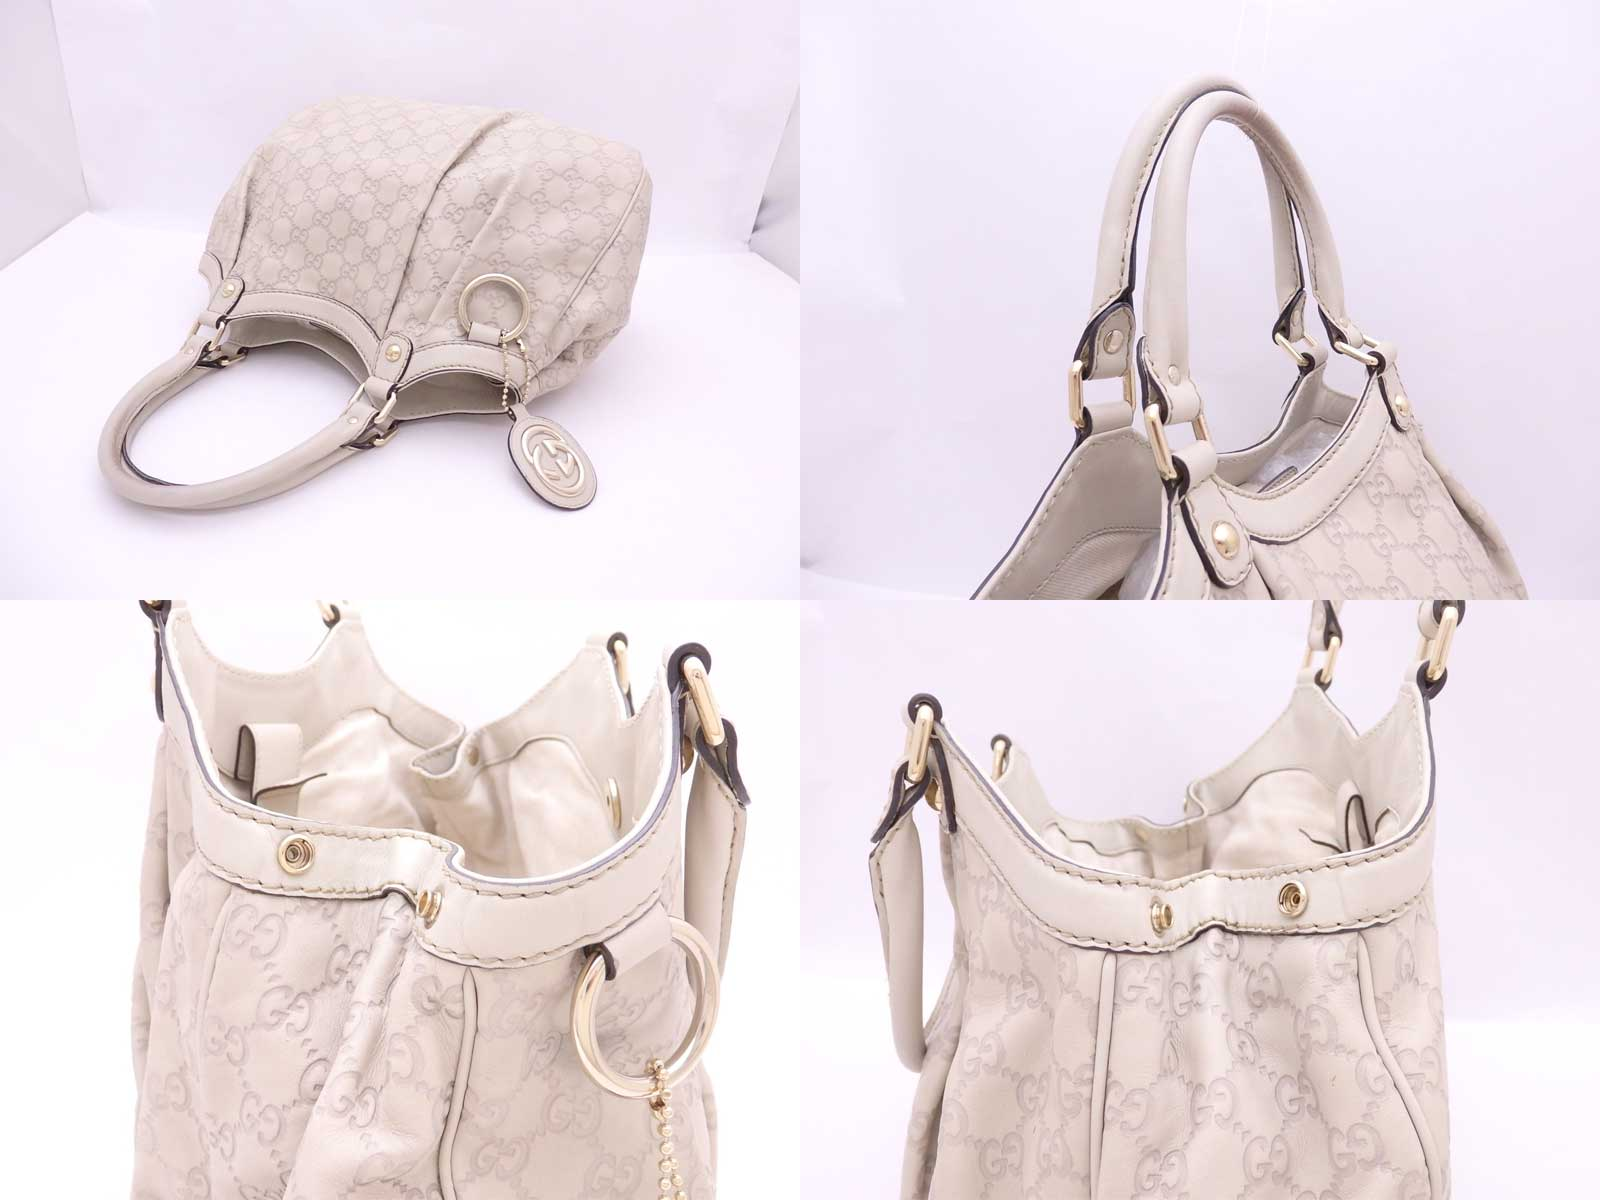 dfe93cd7cc2 Auth Gucci Guccissima Sukey Shoulder Bag Beige Leather *USED ...